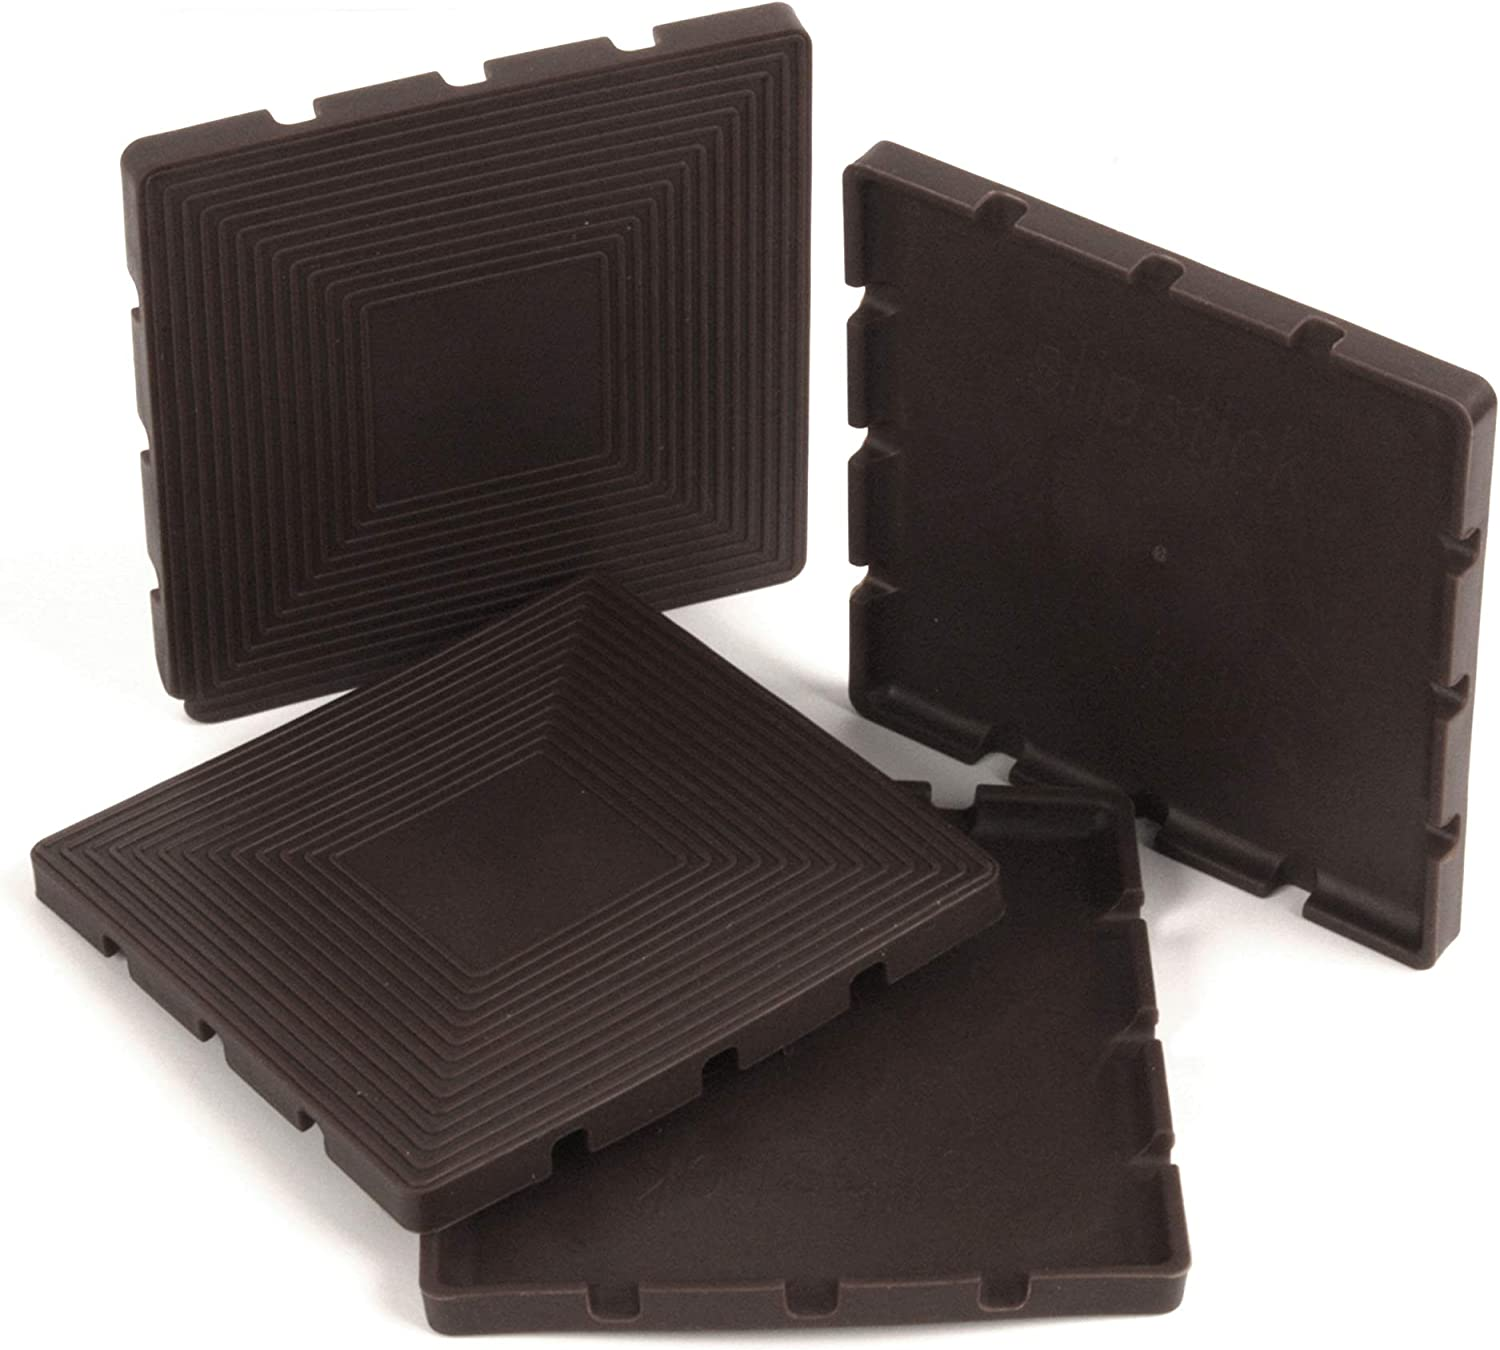 Set of 4 Grippers Slipstick CB885 3-1//2 Inch Large Non Slip Rubber Floor Surface Protector Pads Round Chocolate Brown